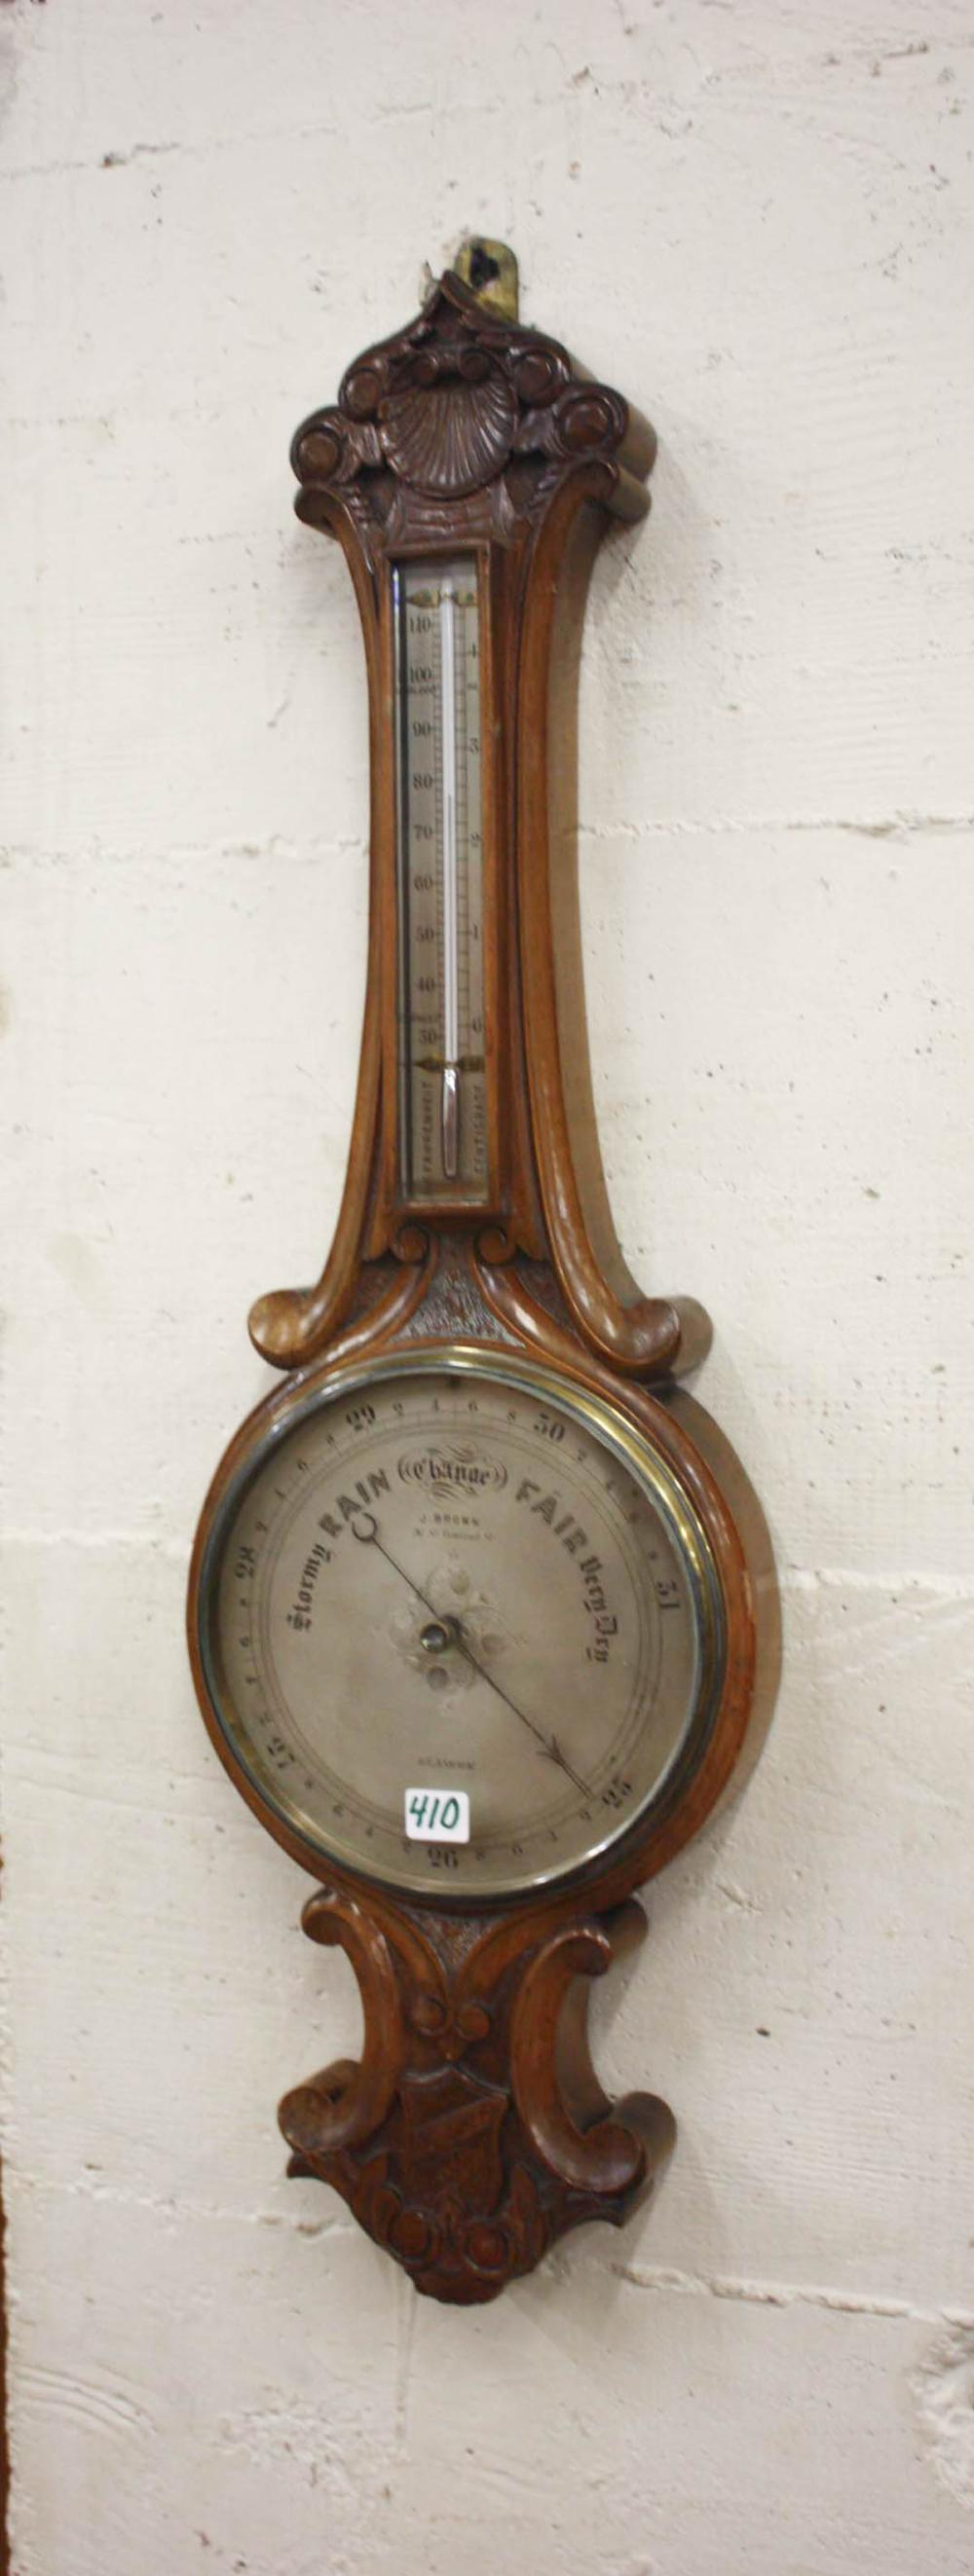 Lot 410: VICTORIAN SCOTTISH BANJO BAROMETER/THERMOMETER, Ja